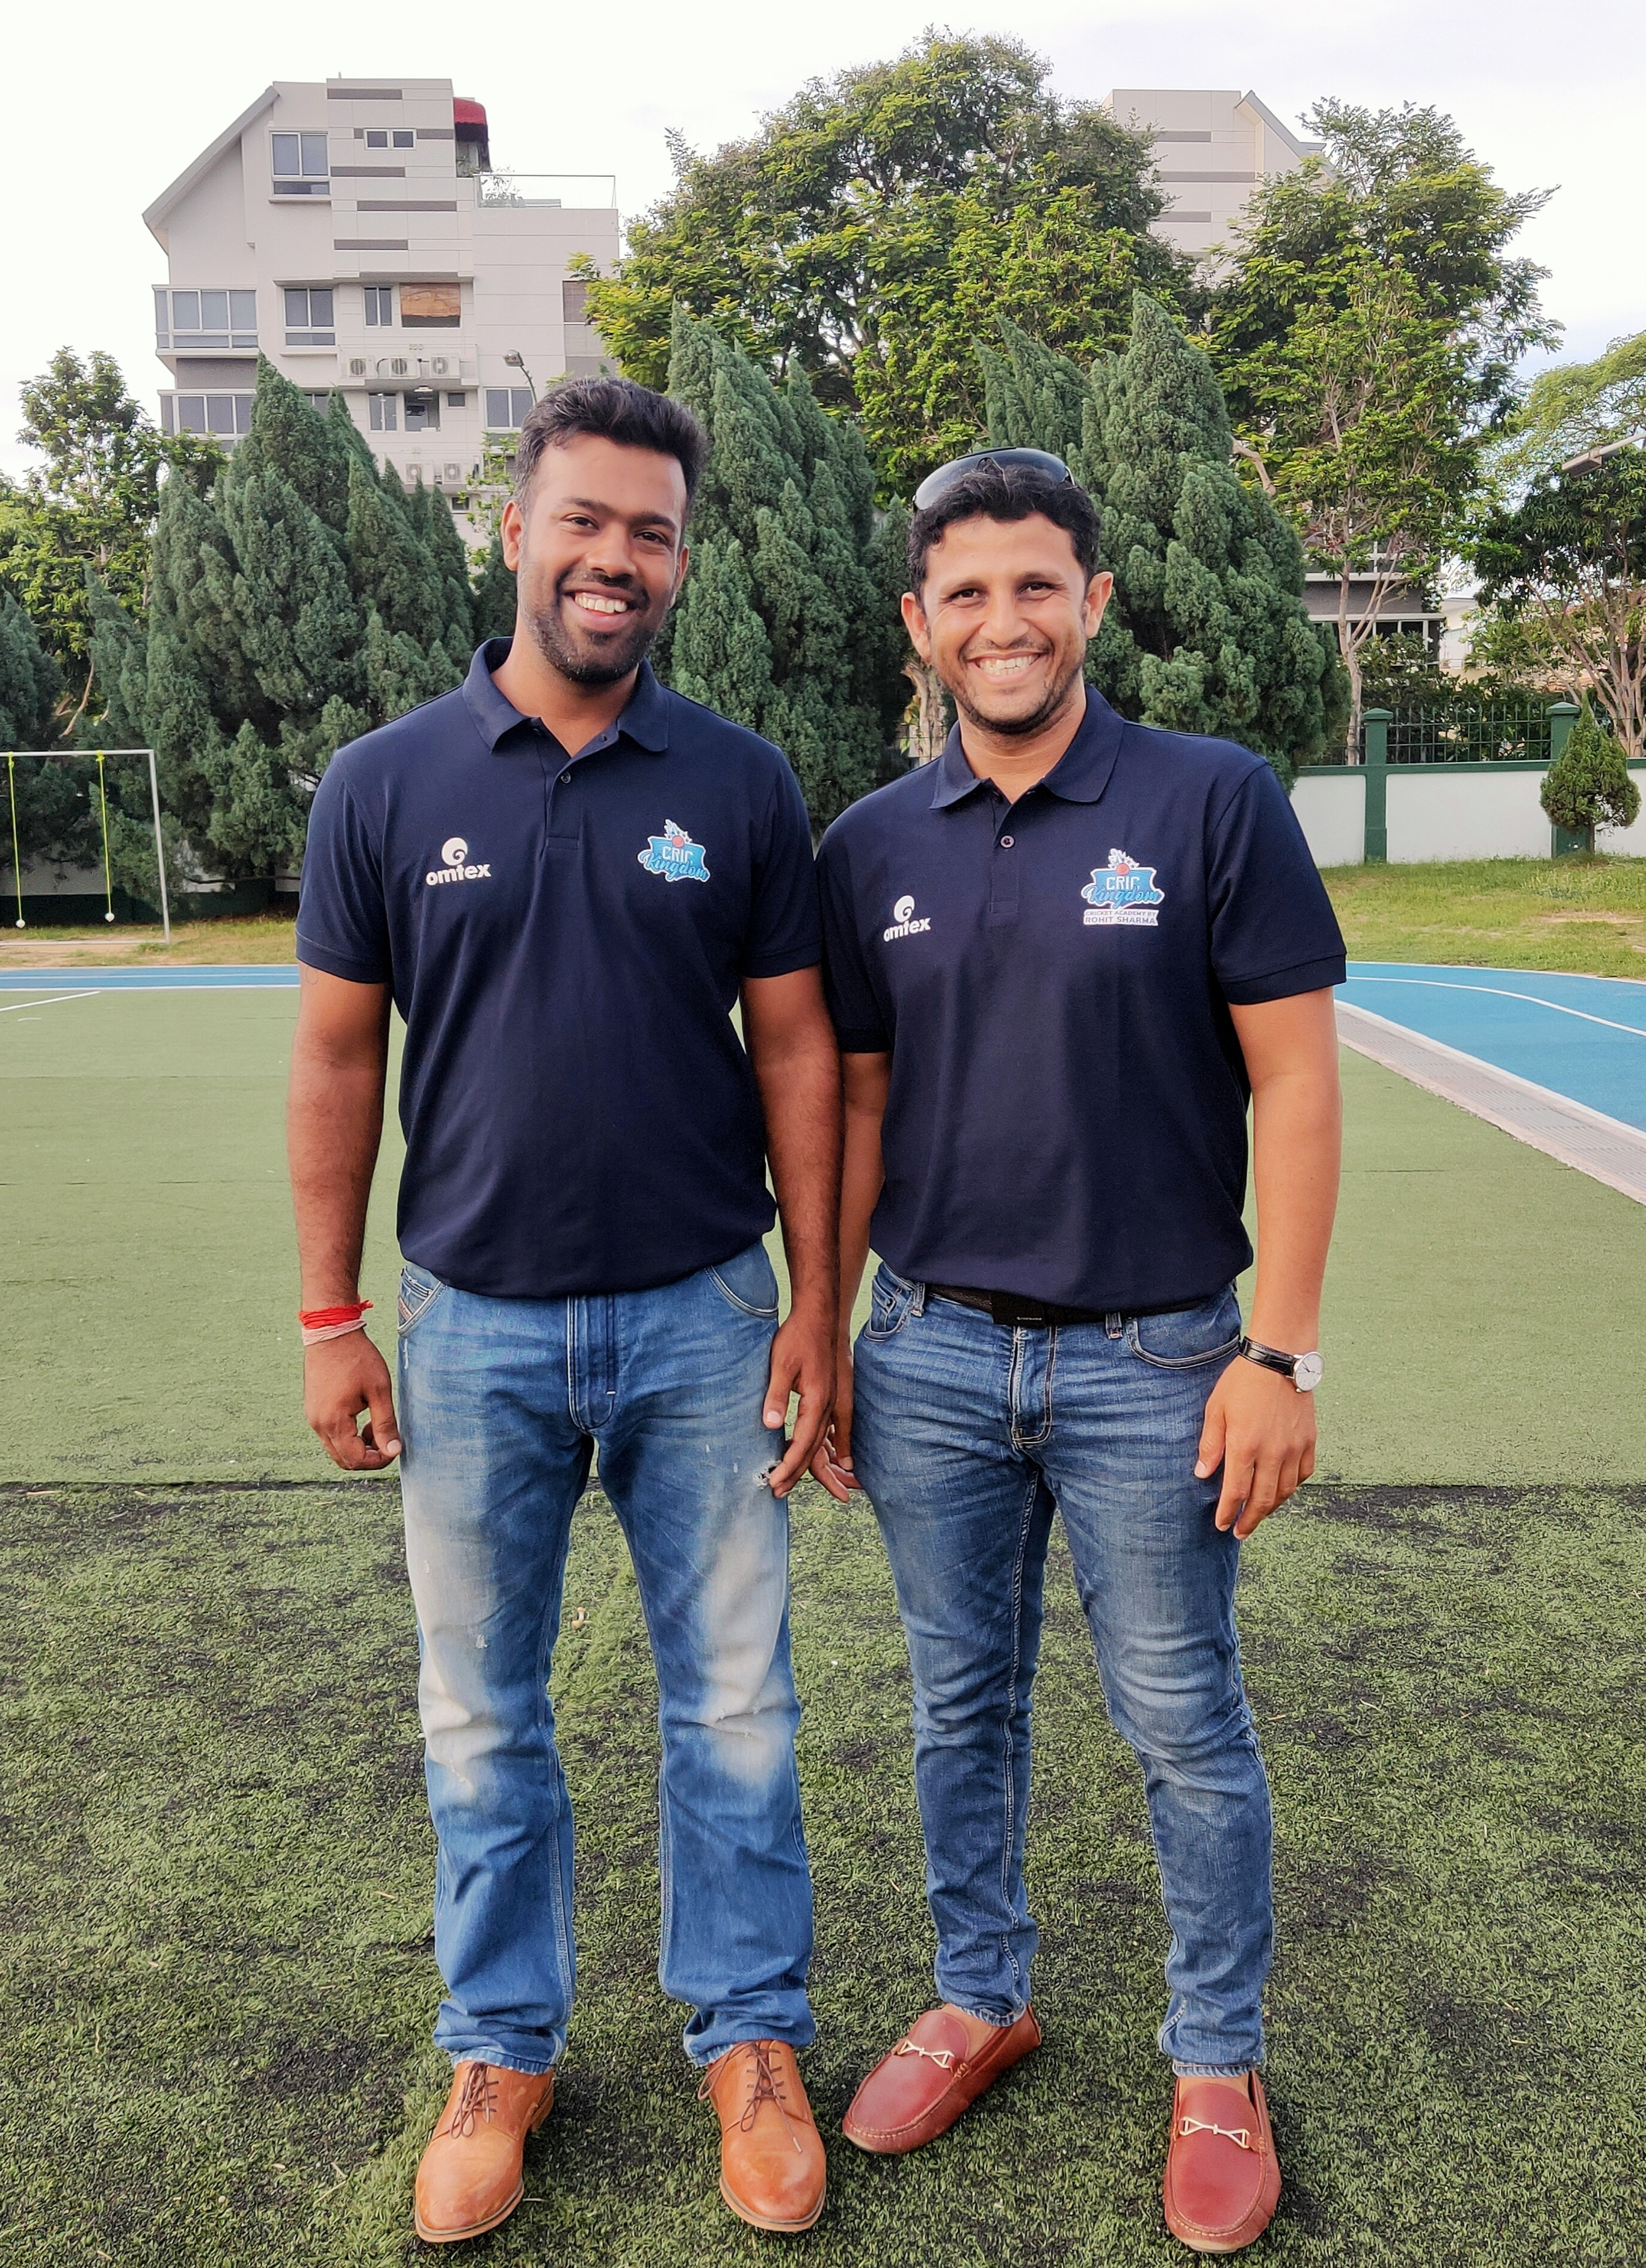 Vishal Sharma, brother of Hitman Rohit Sharma and himself a cricketer with former captain of the Singapore National Cricket Team at St Patricks School Singapore, both sporting the kit with the new CricKingdom logo. Photo: Connected to India